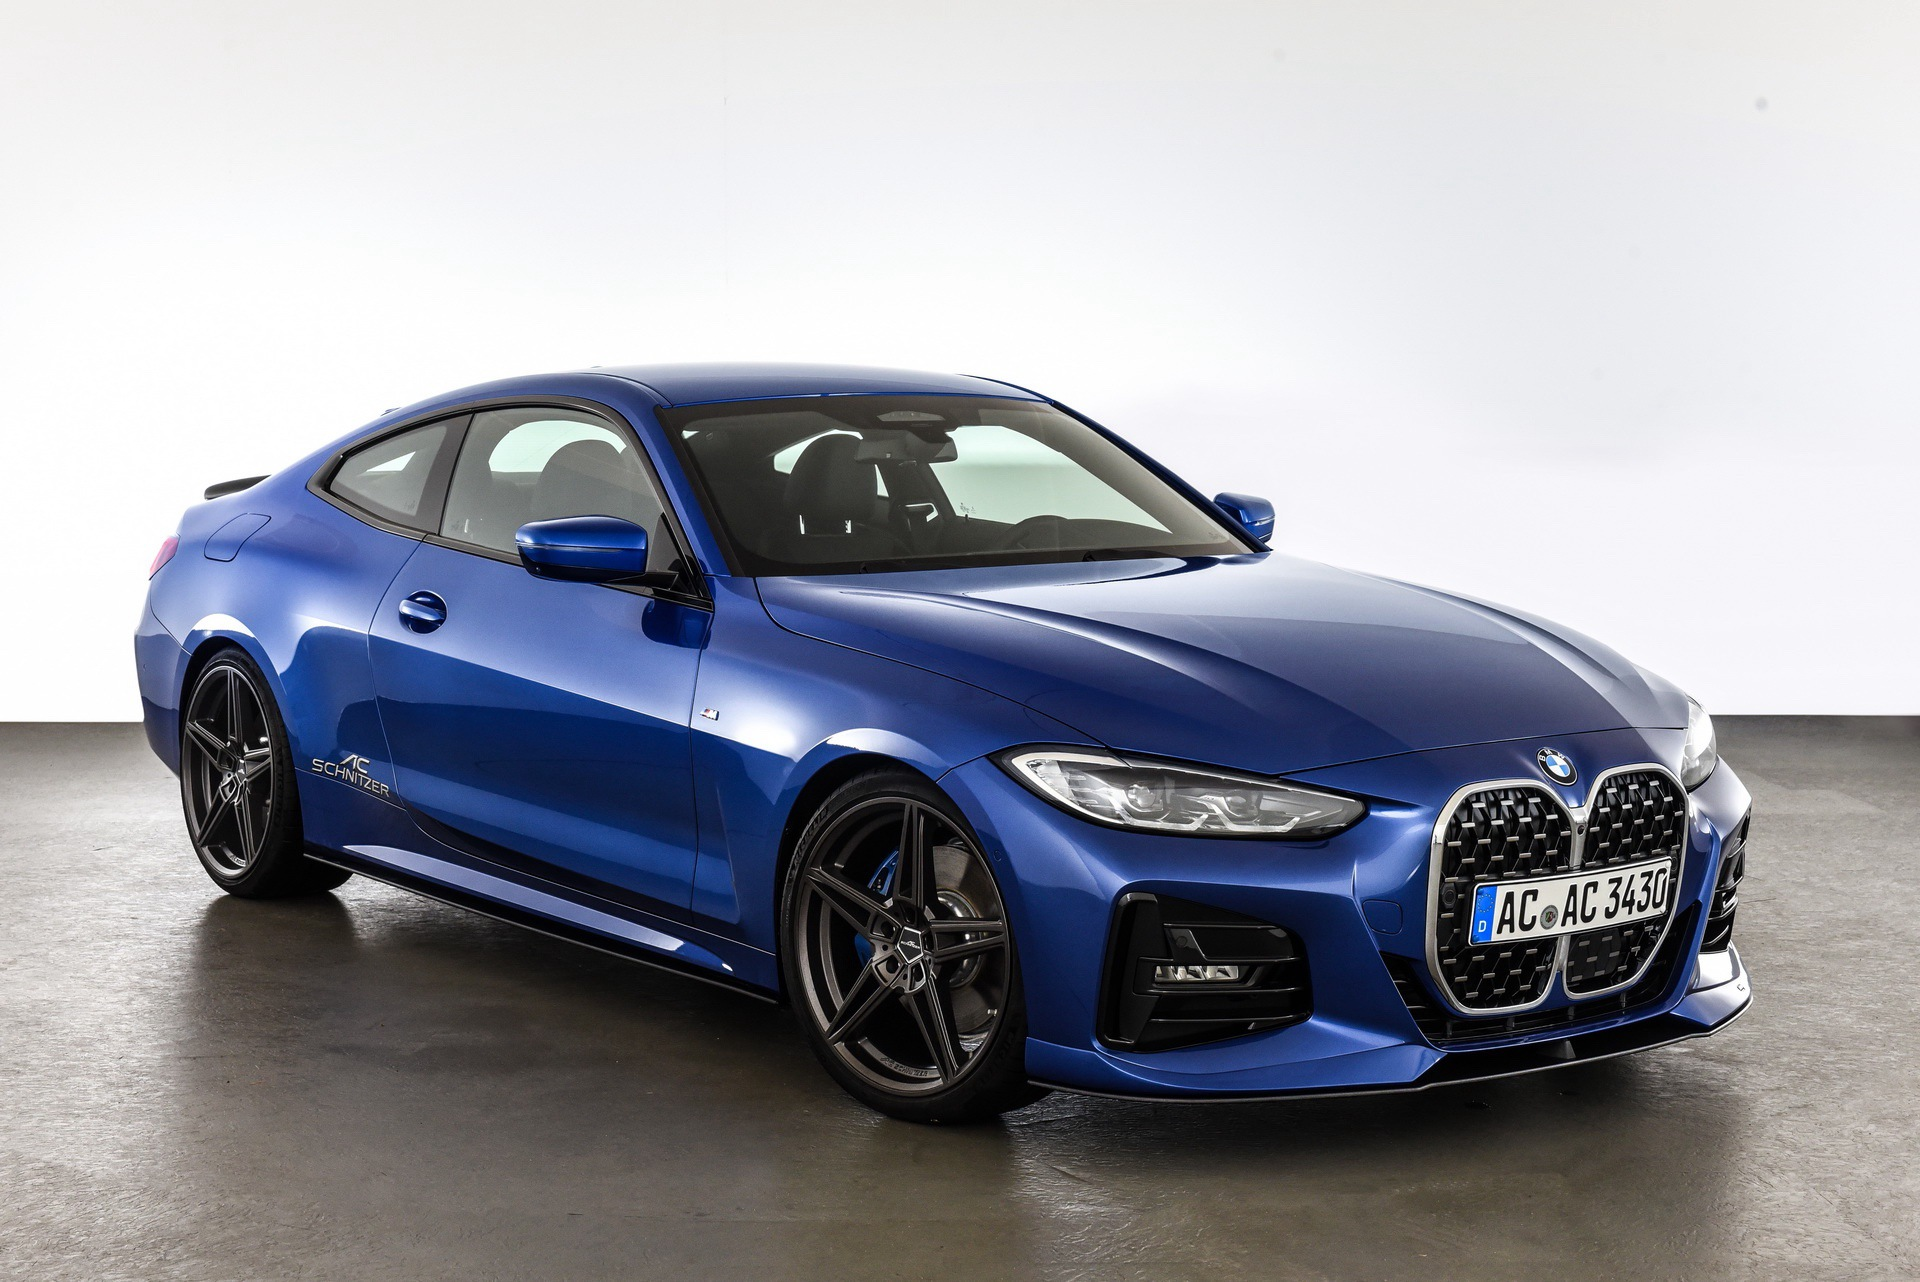 BMW_4-Series_Coupe_AC_Schnitzer_0003